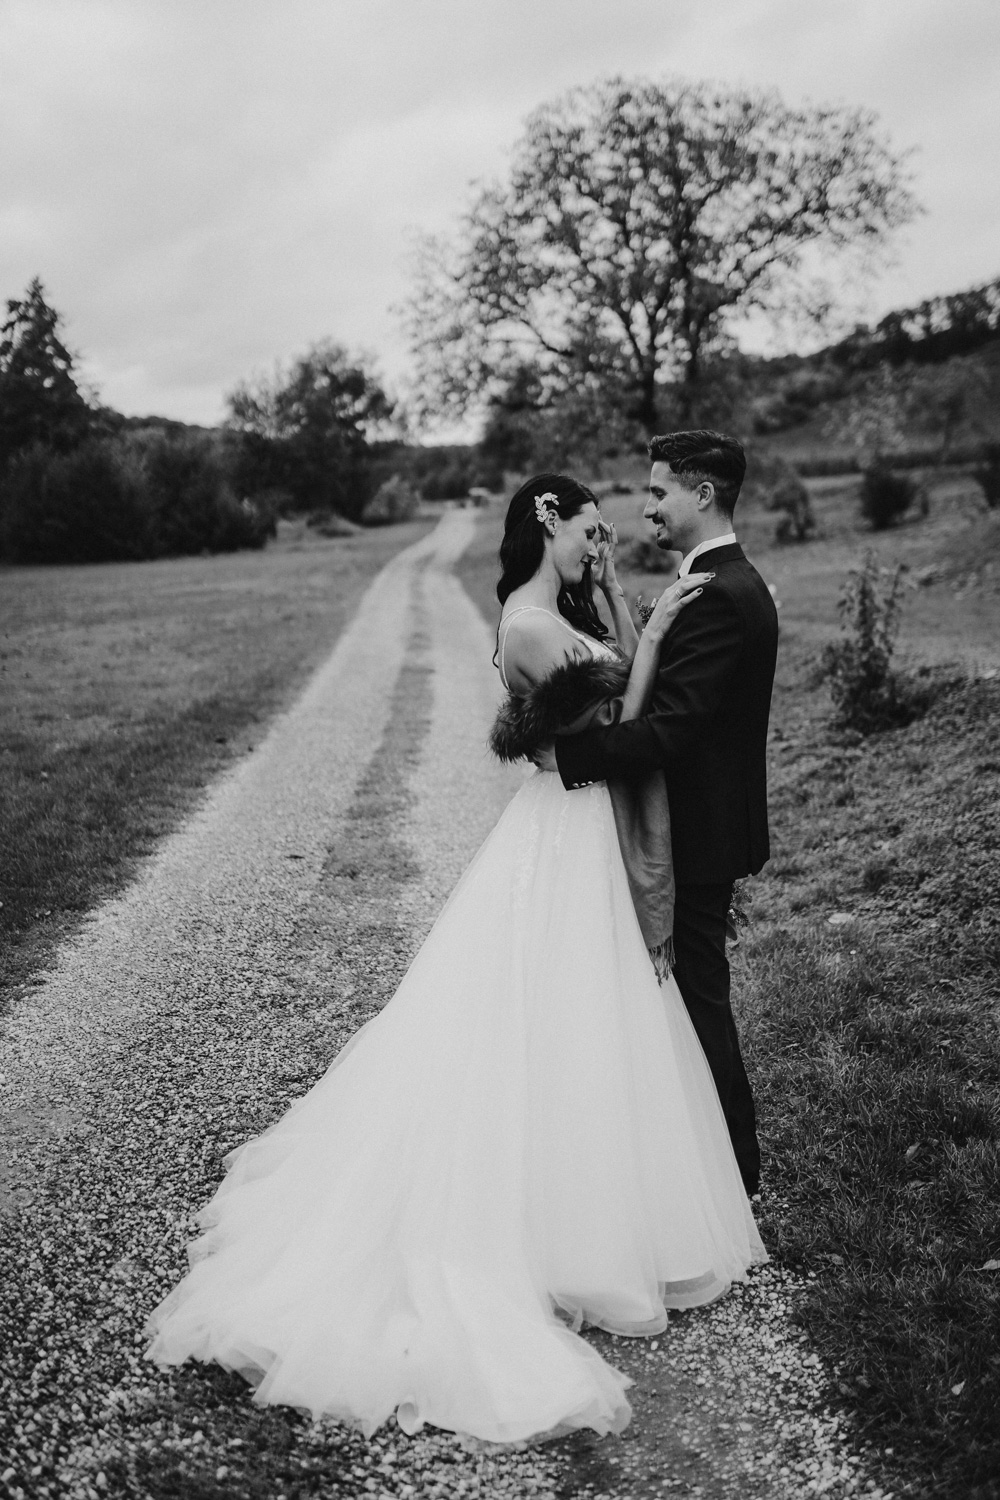 Weingut Steinbachhof Wedding | Oleg Tru - wedding photographer